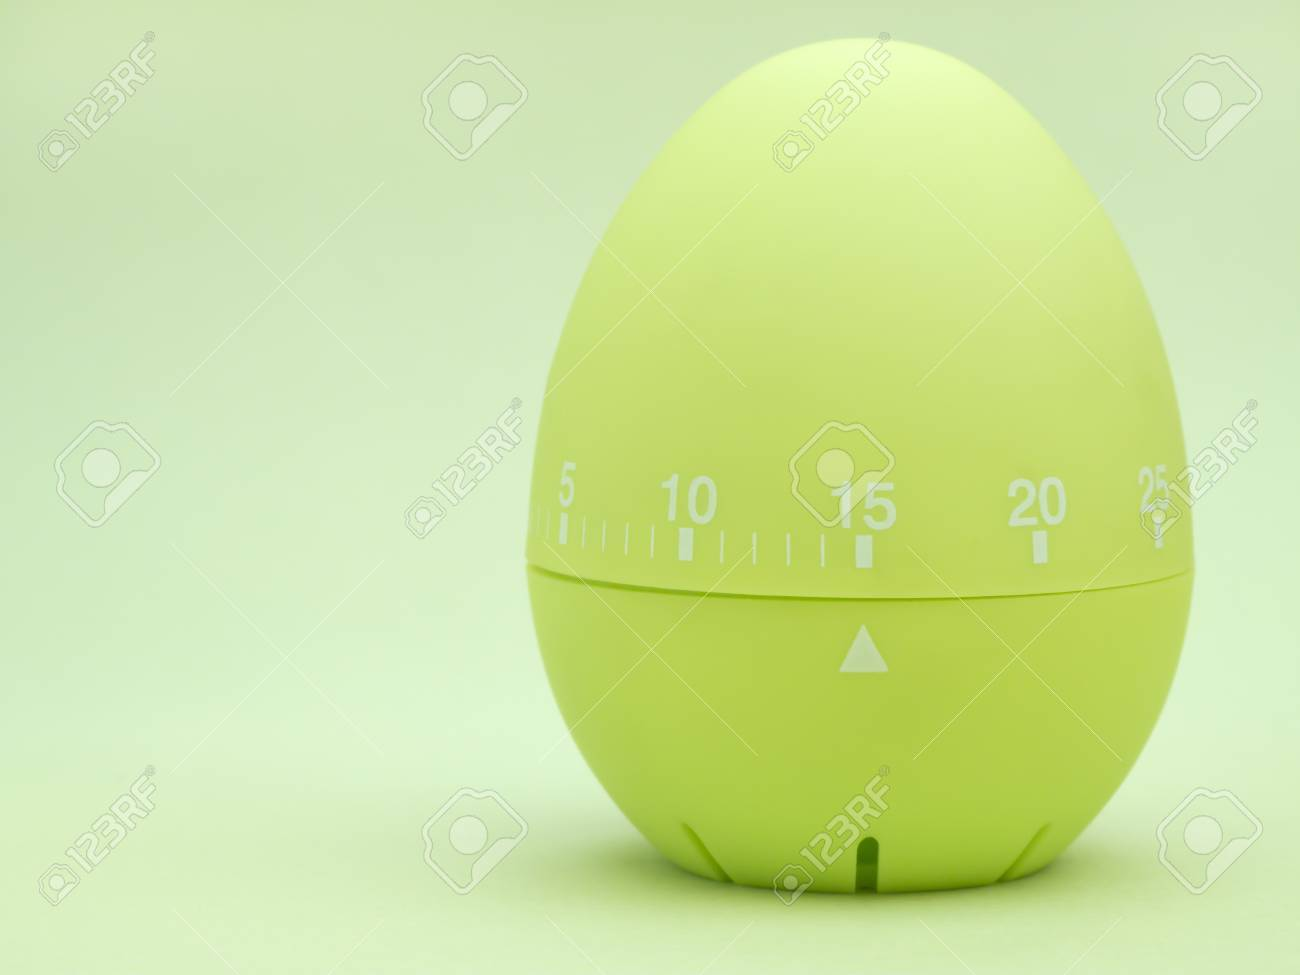 green egg shaped kitchen timer set to 15 minutes on green background